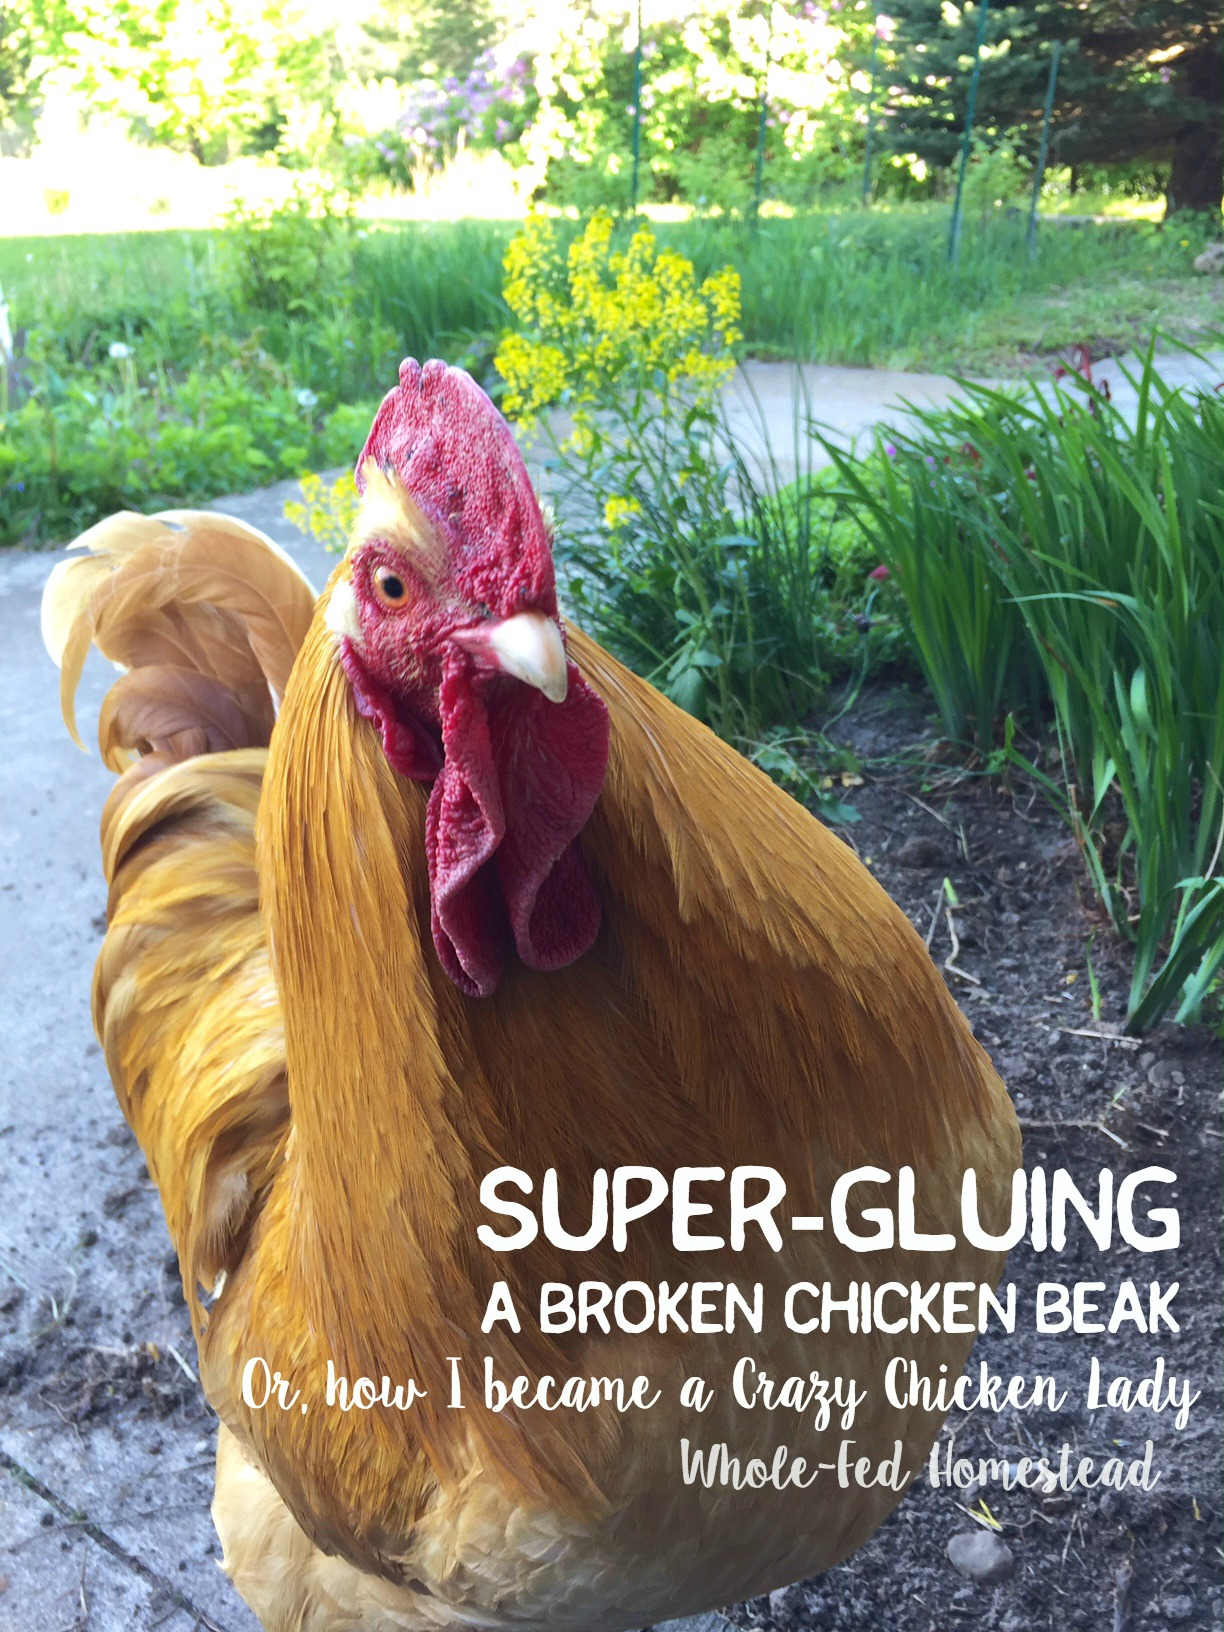 Super gluing a broken chicken beak